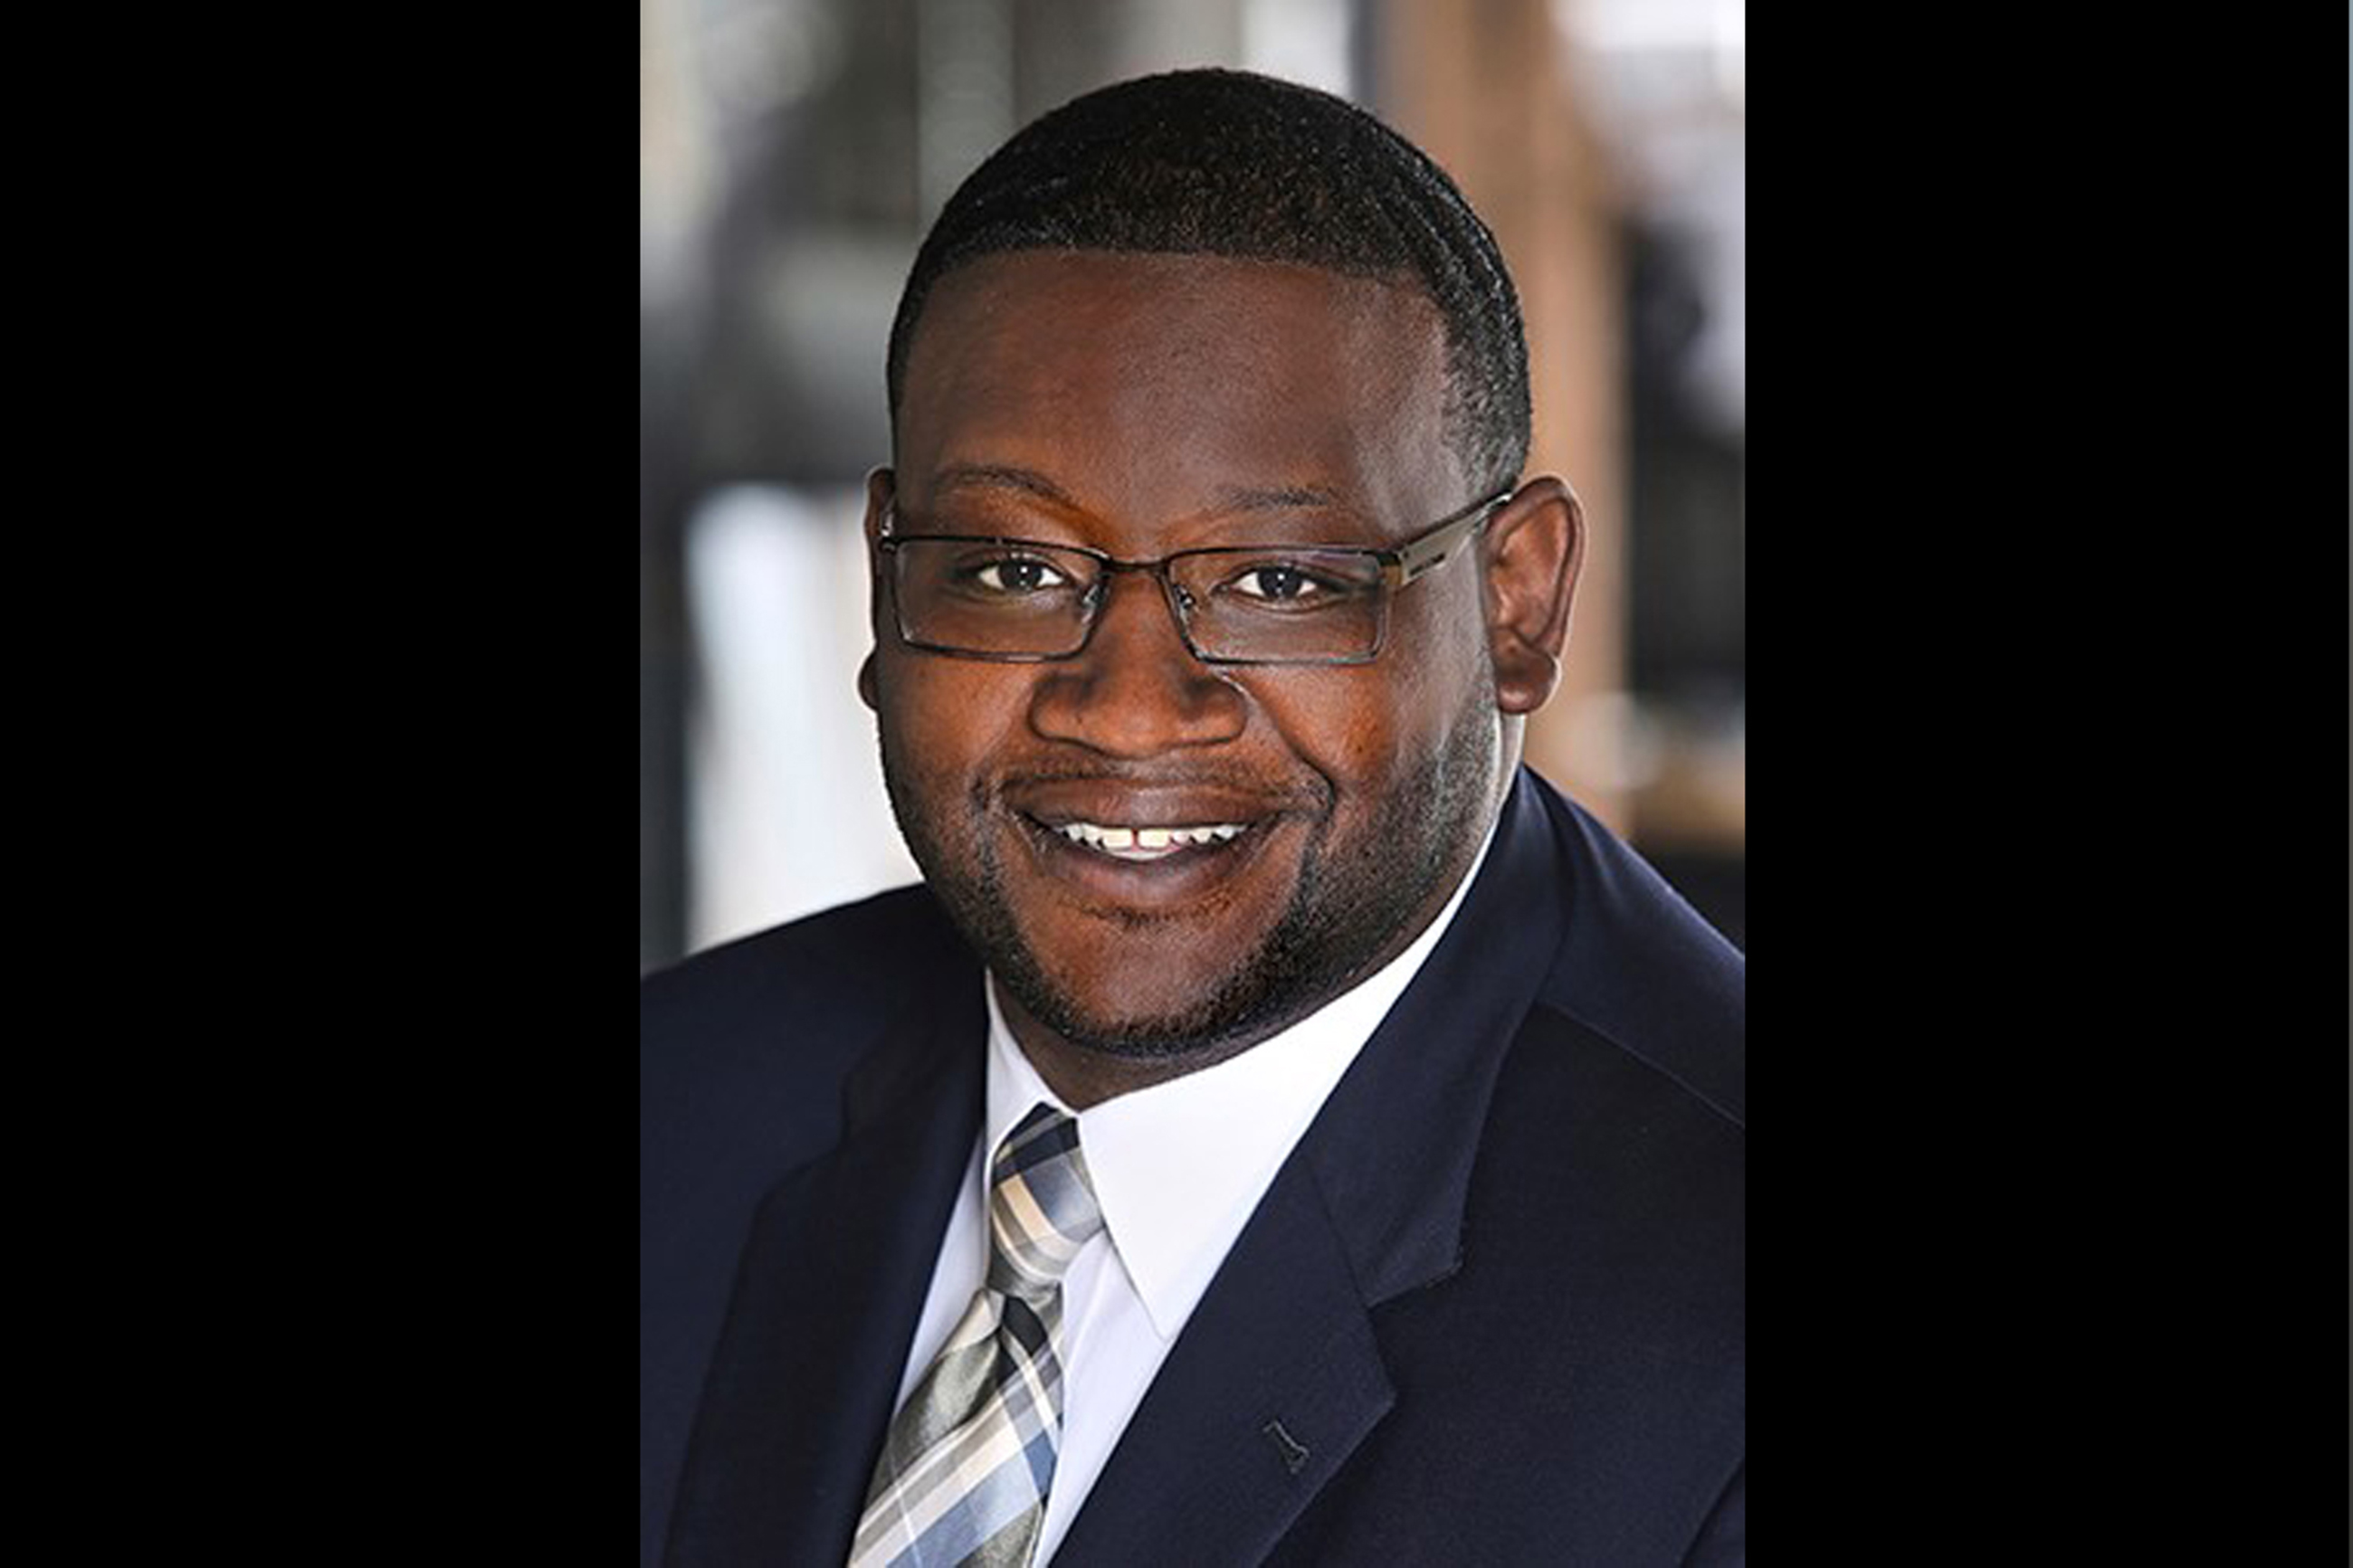 Cerron Cade, Del State Class of 2007, has served as the state Secretary of Labor since 2018. He has now been nominated by Gov. John Carney to become the Director of the state Office of Management and Budget.